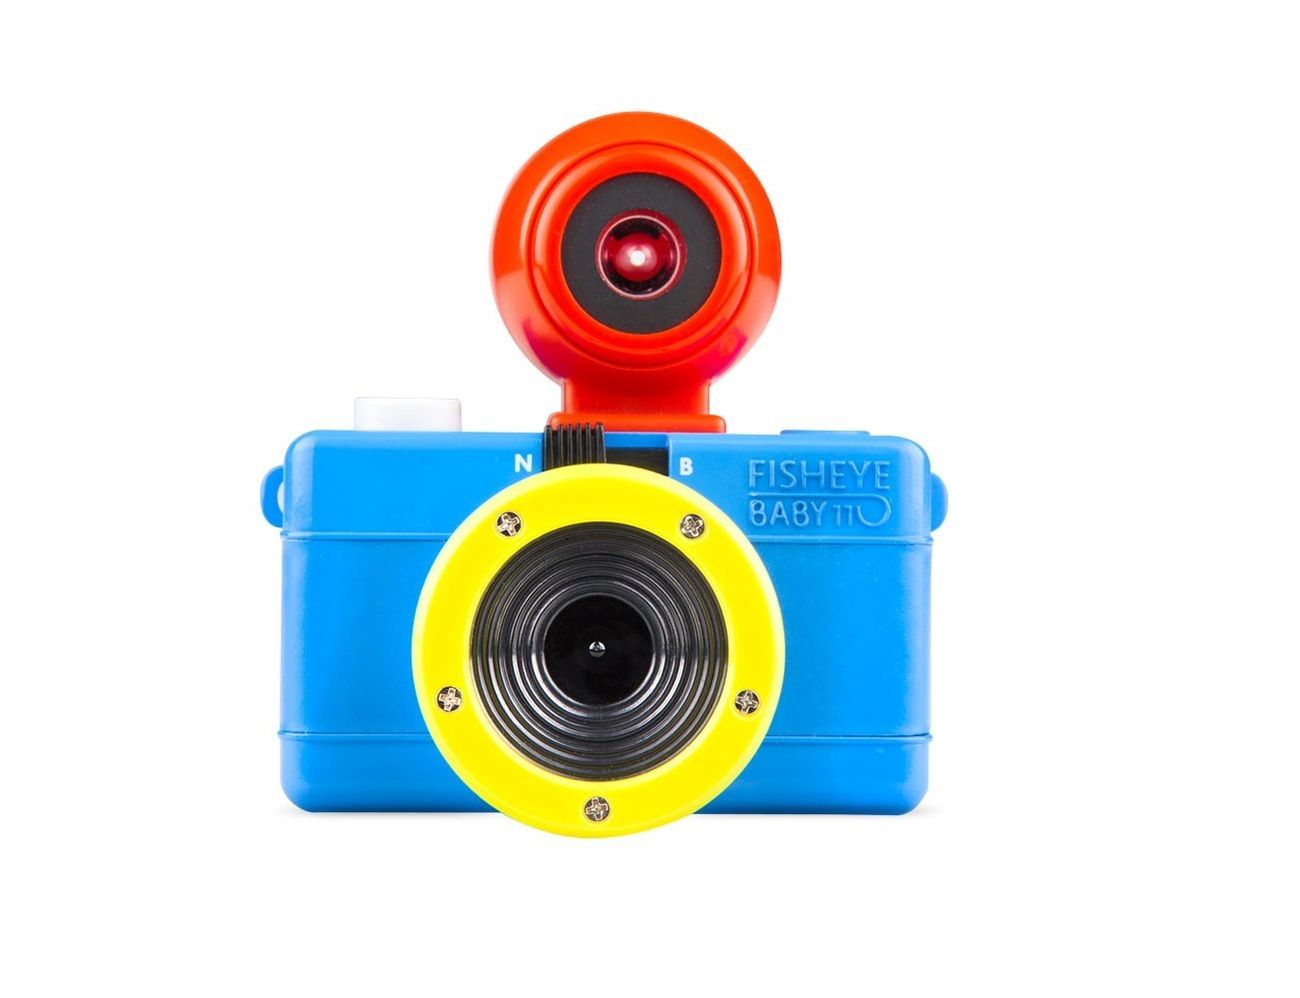 Fisheye Baby 110 Bauhaus Edition Camera